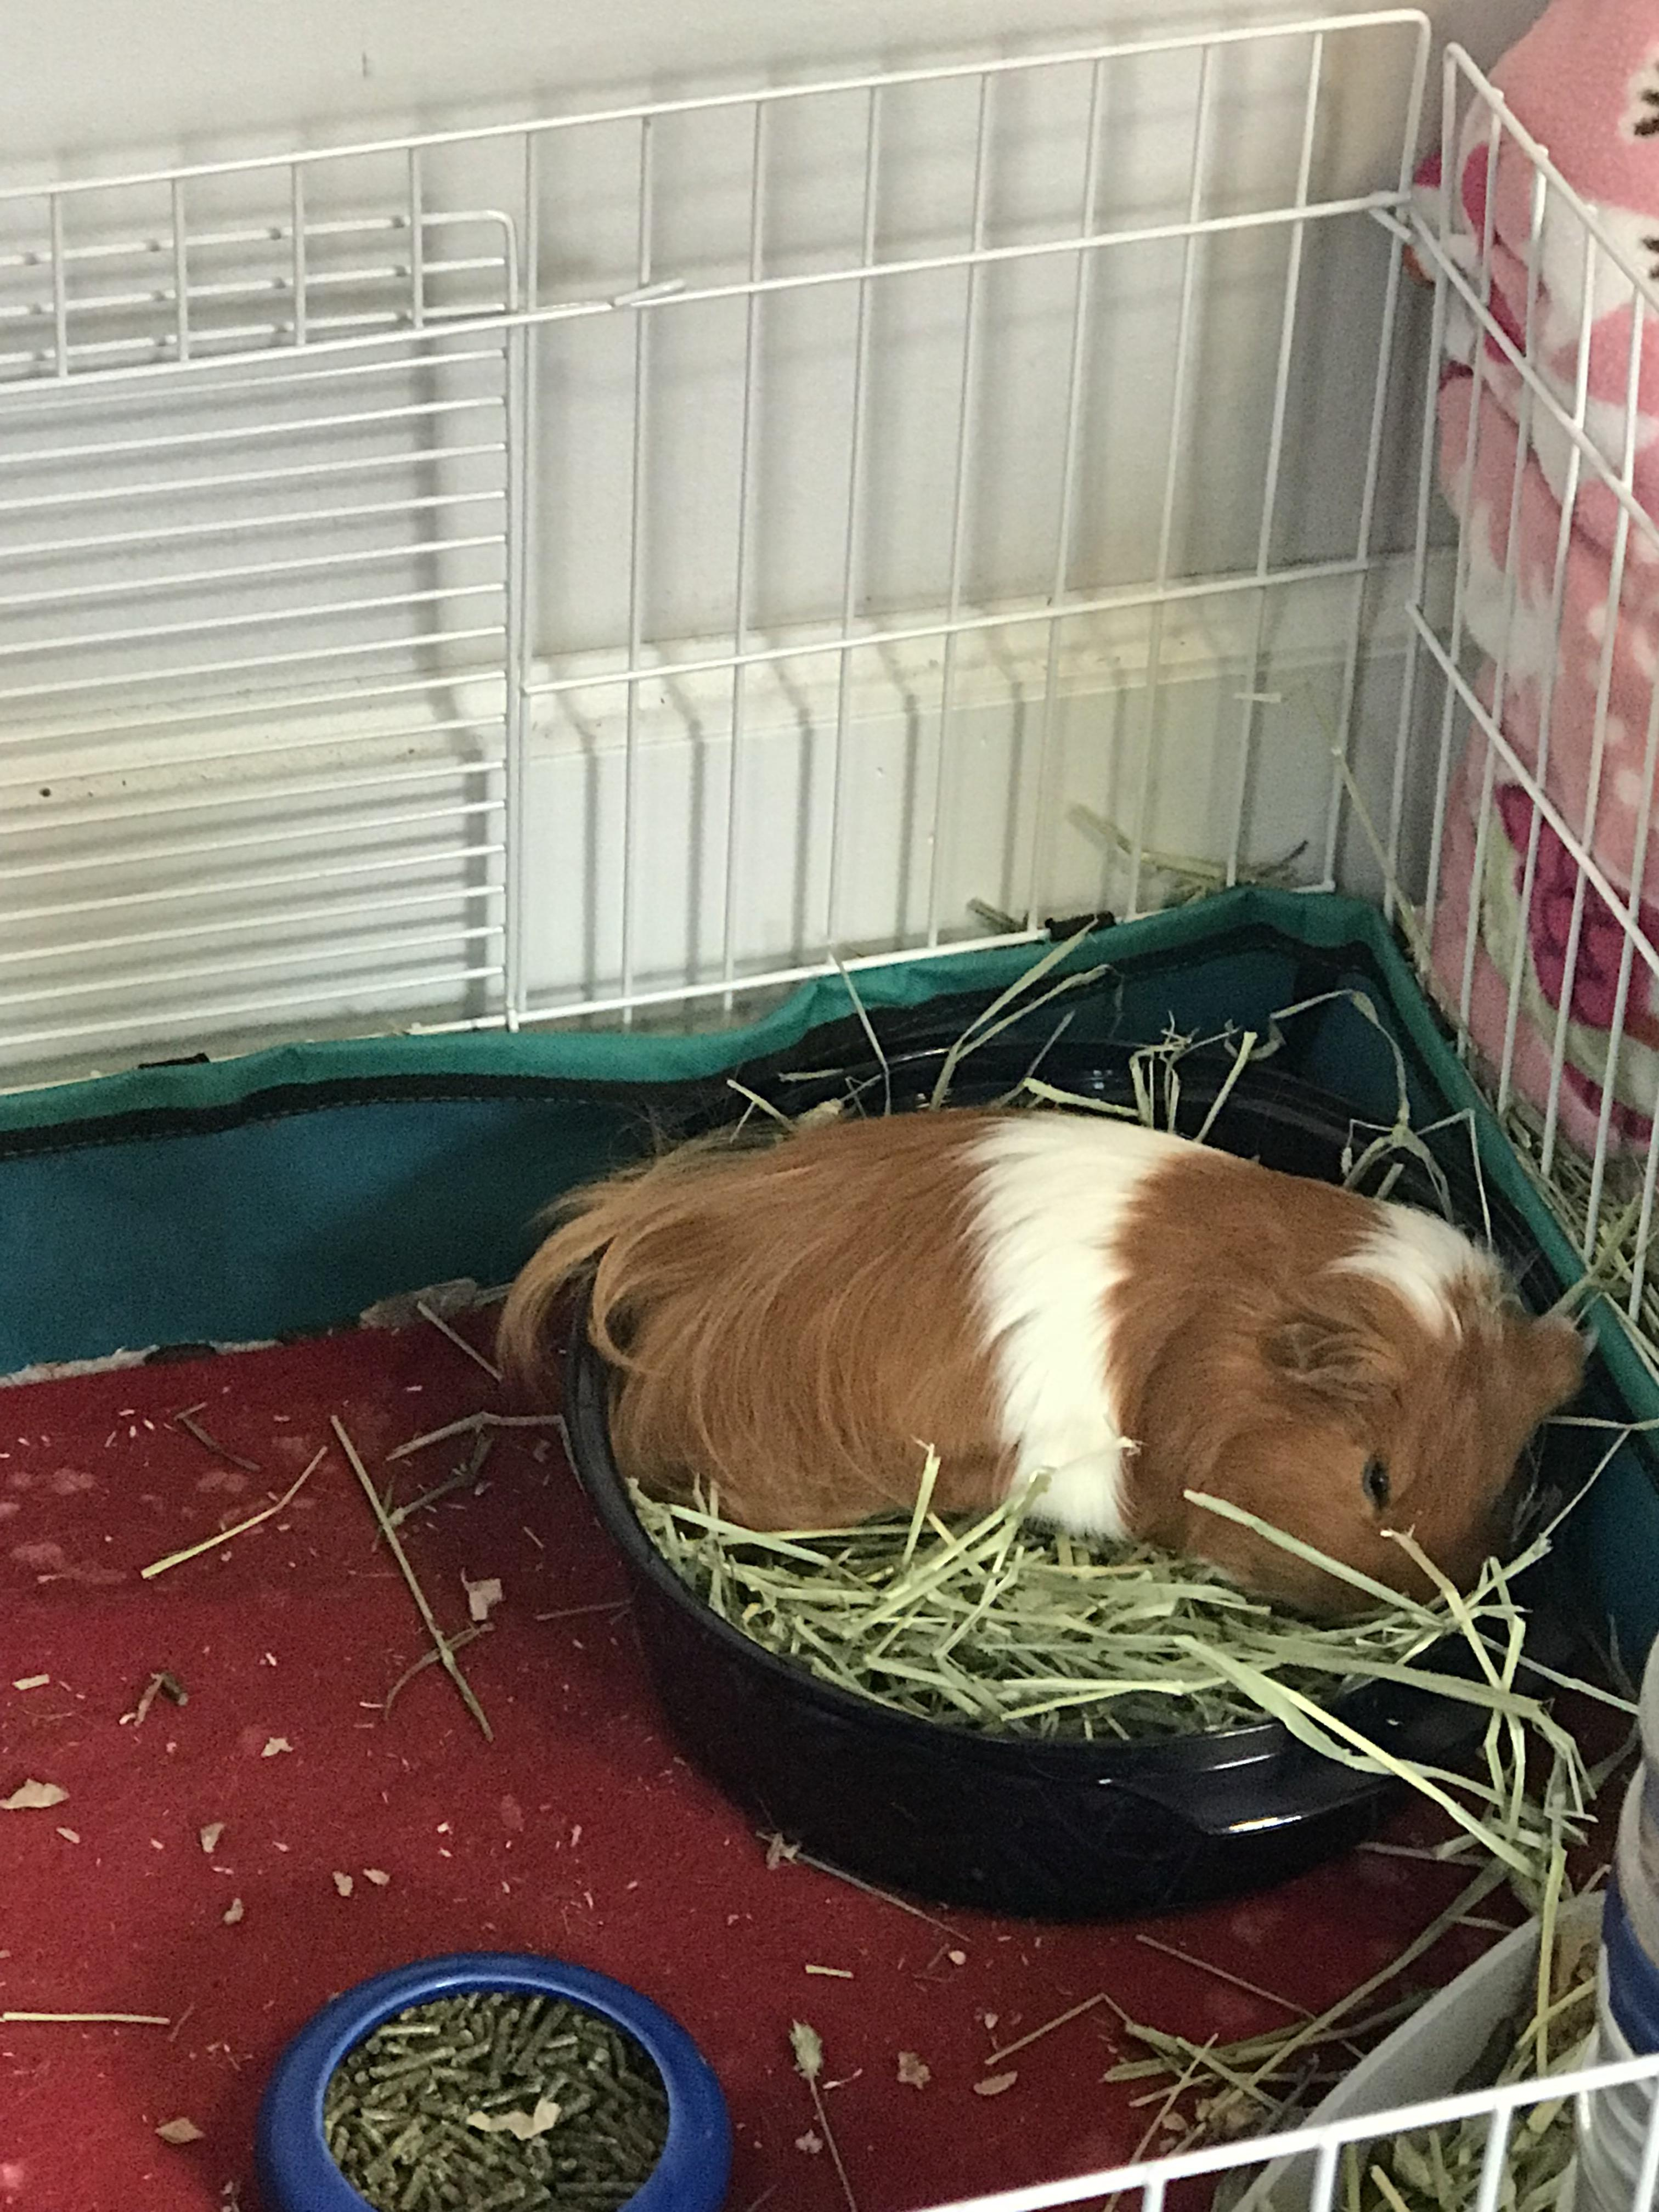 decided to swap out the hay rack for a